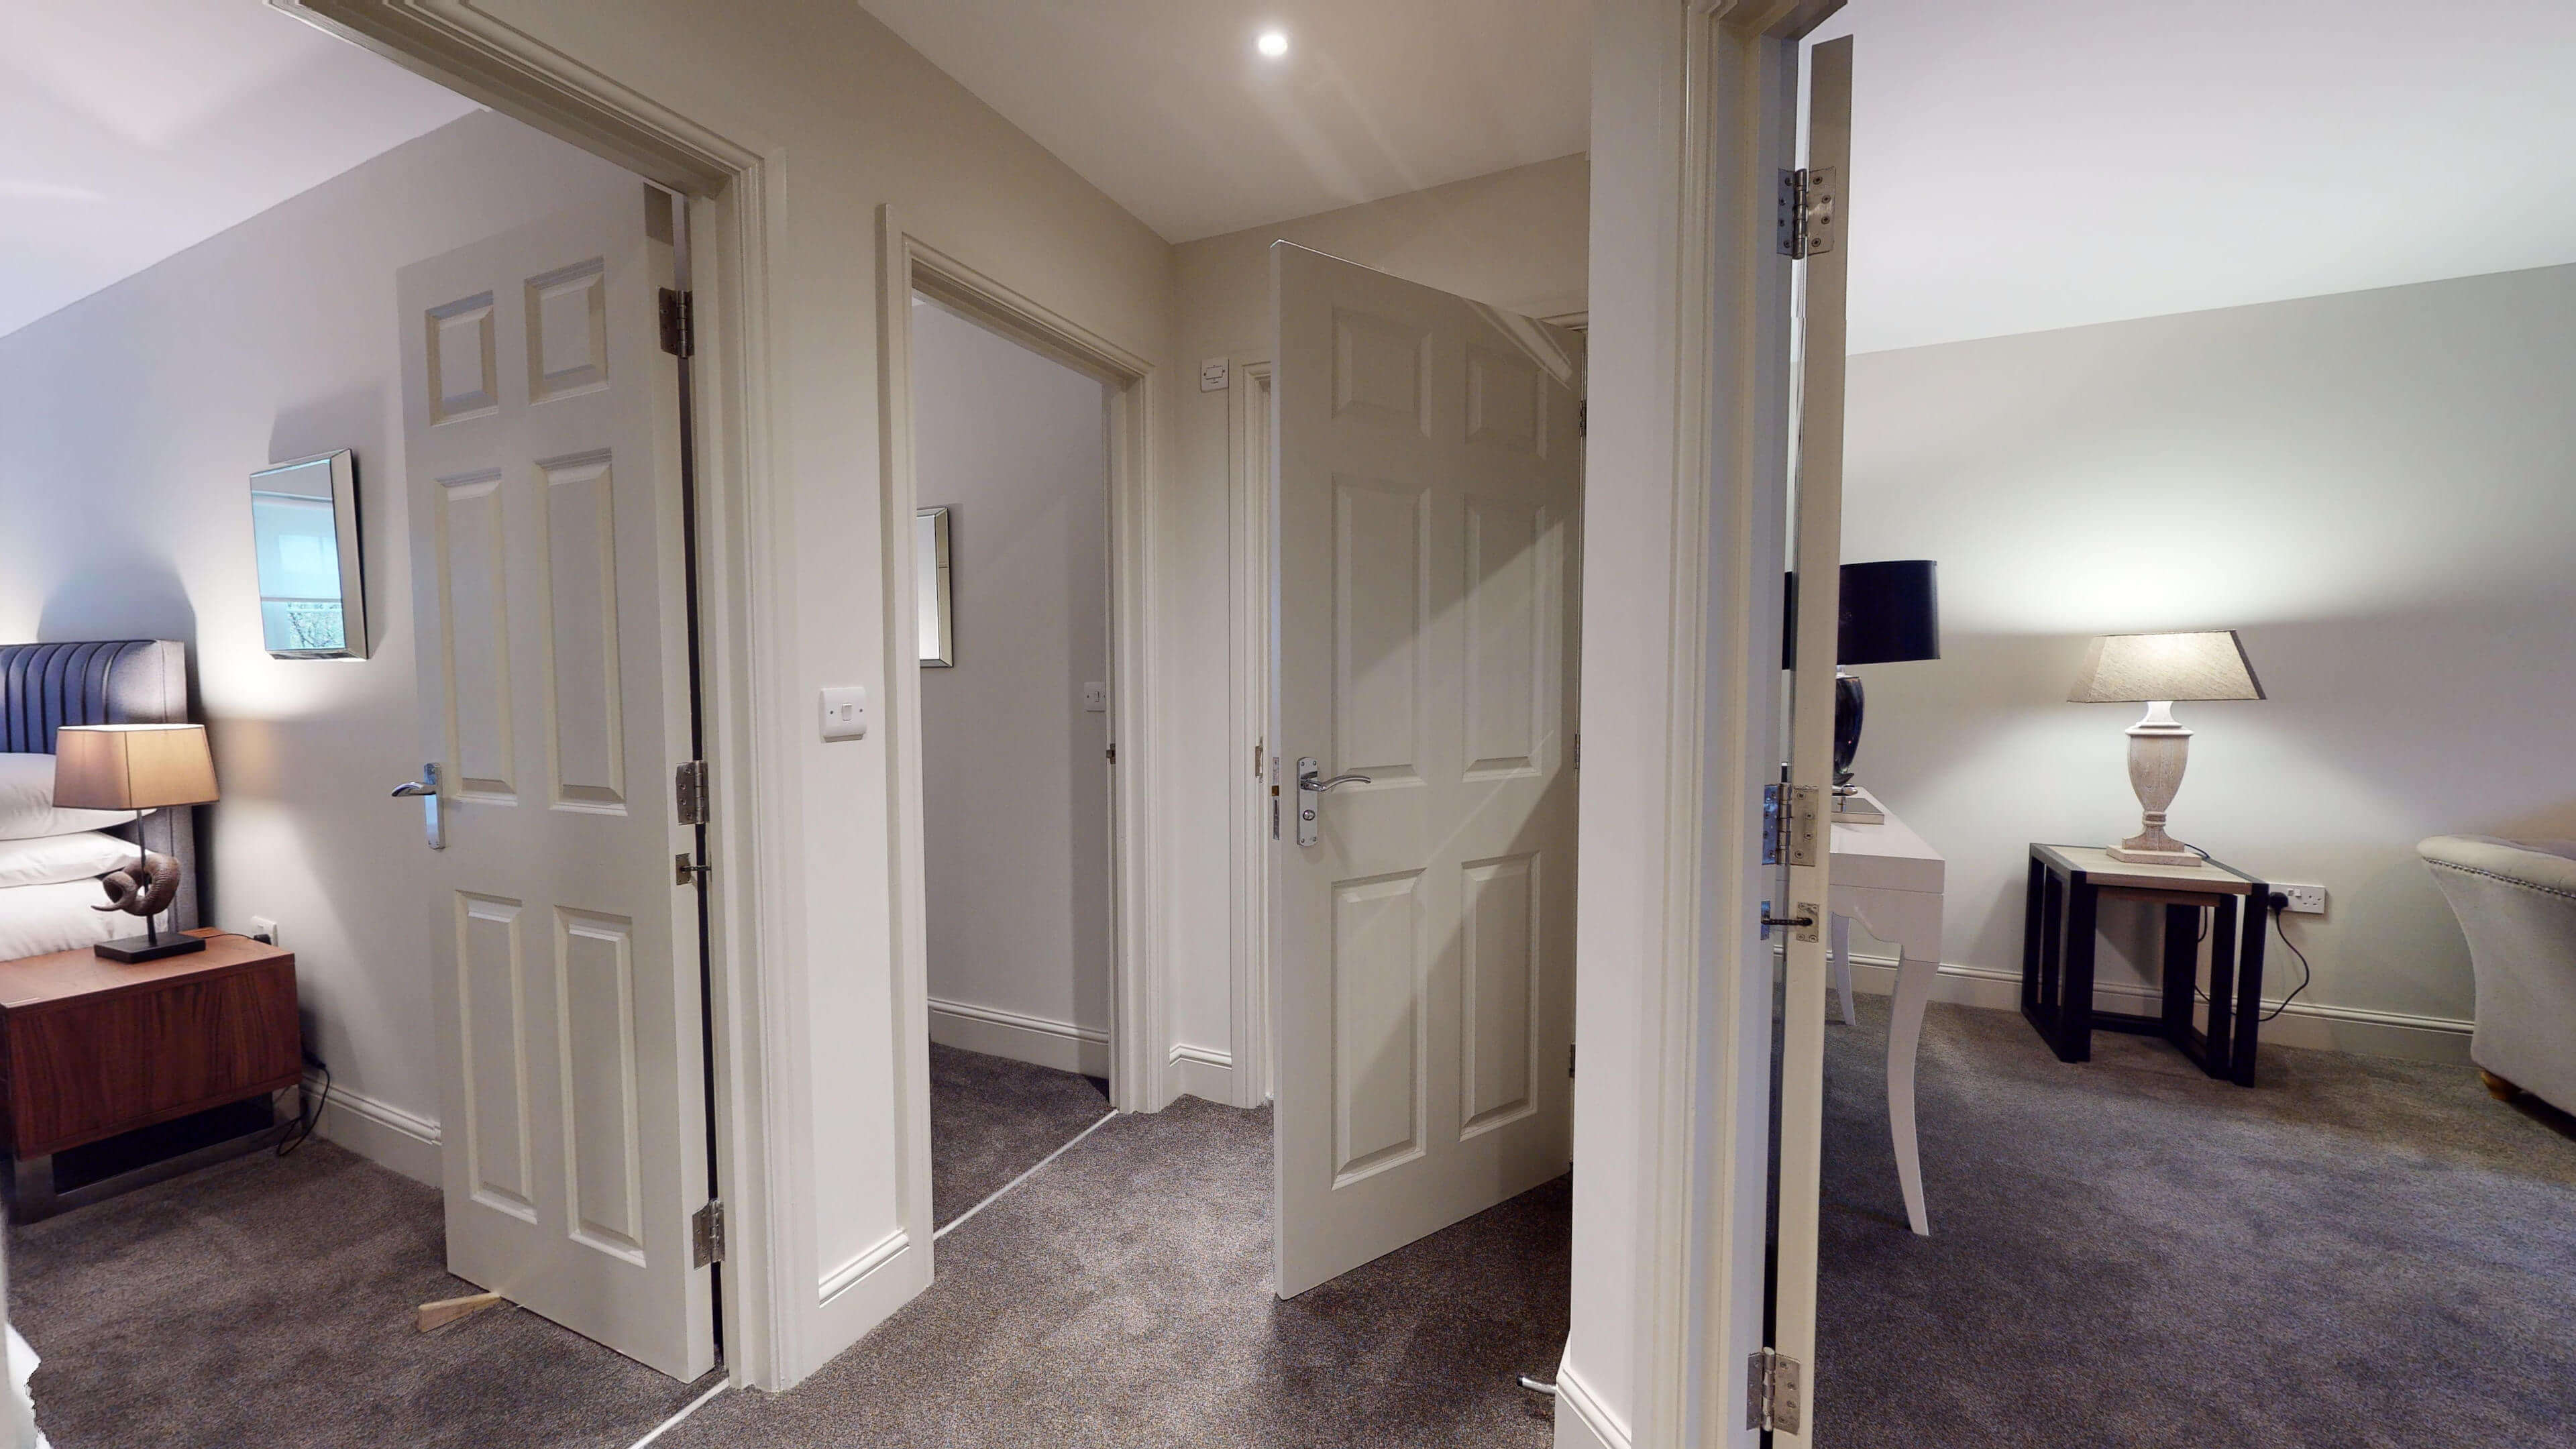 Oxford Serviced Apartment Blenheim Suite Rooms